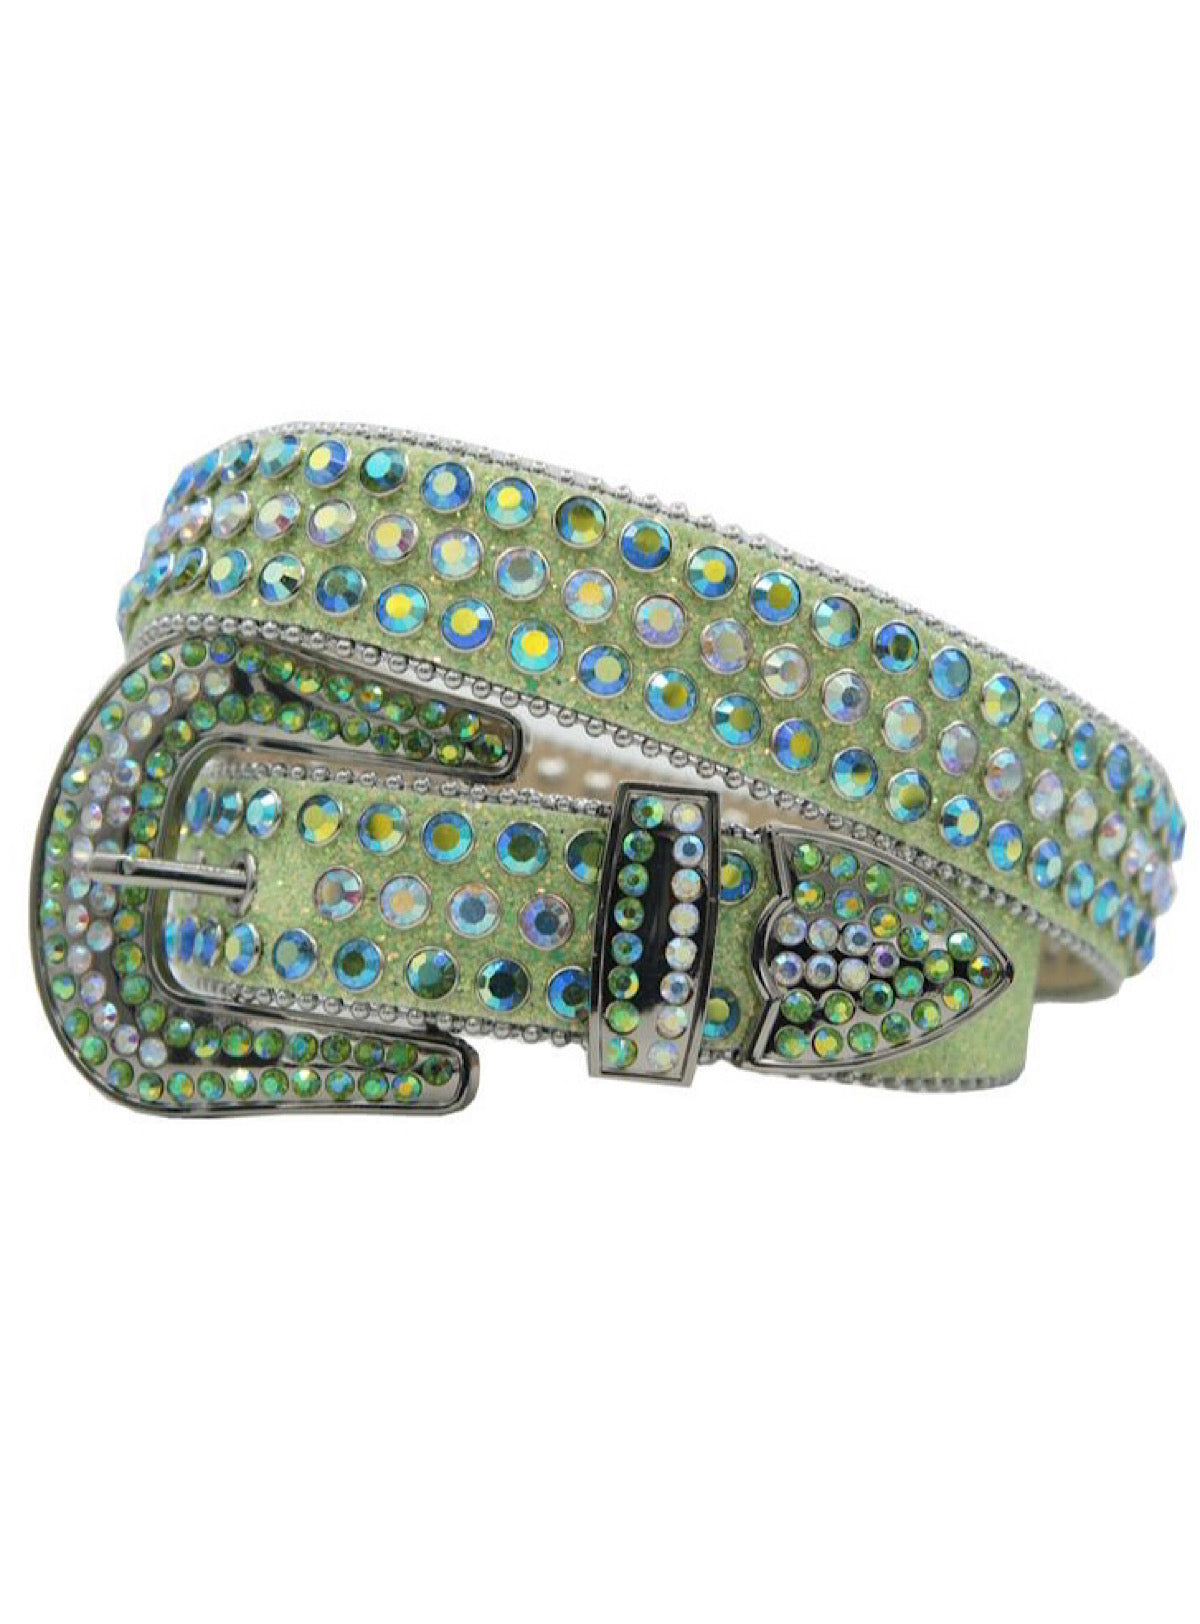 DNA Belt - Shiny Stones - Light Green with Green and Silver Stones